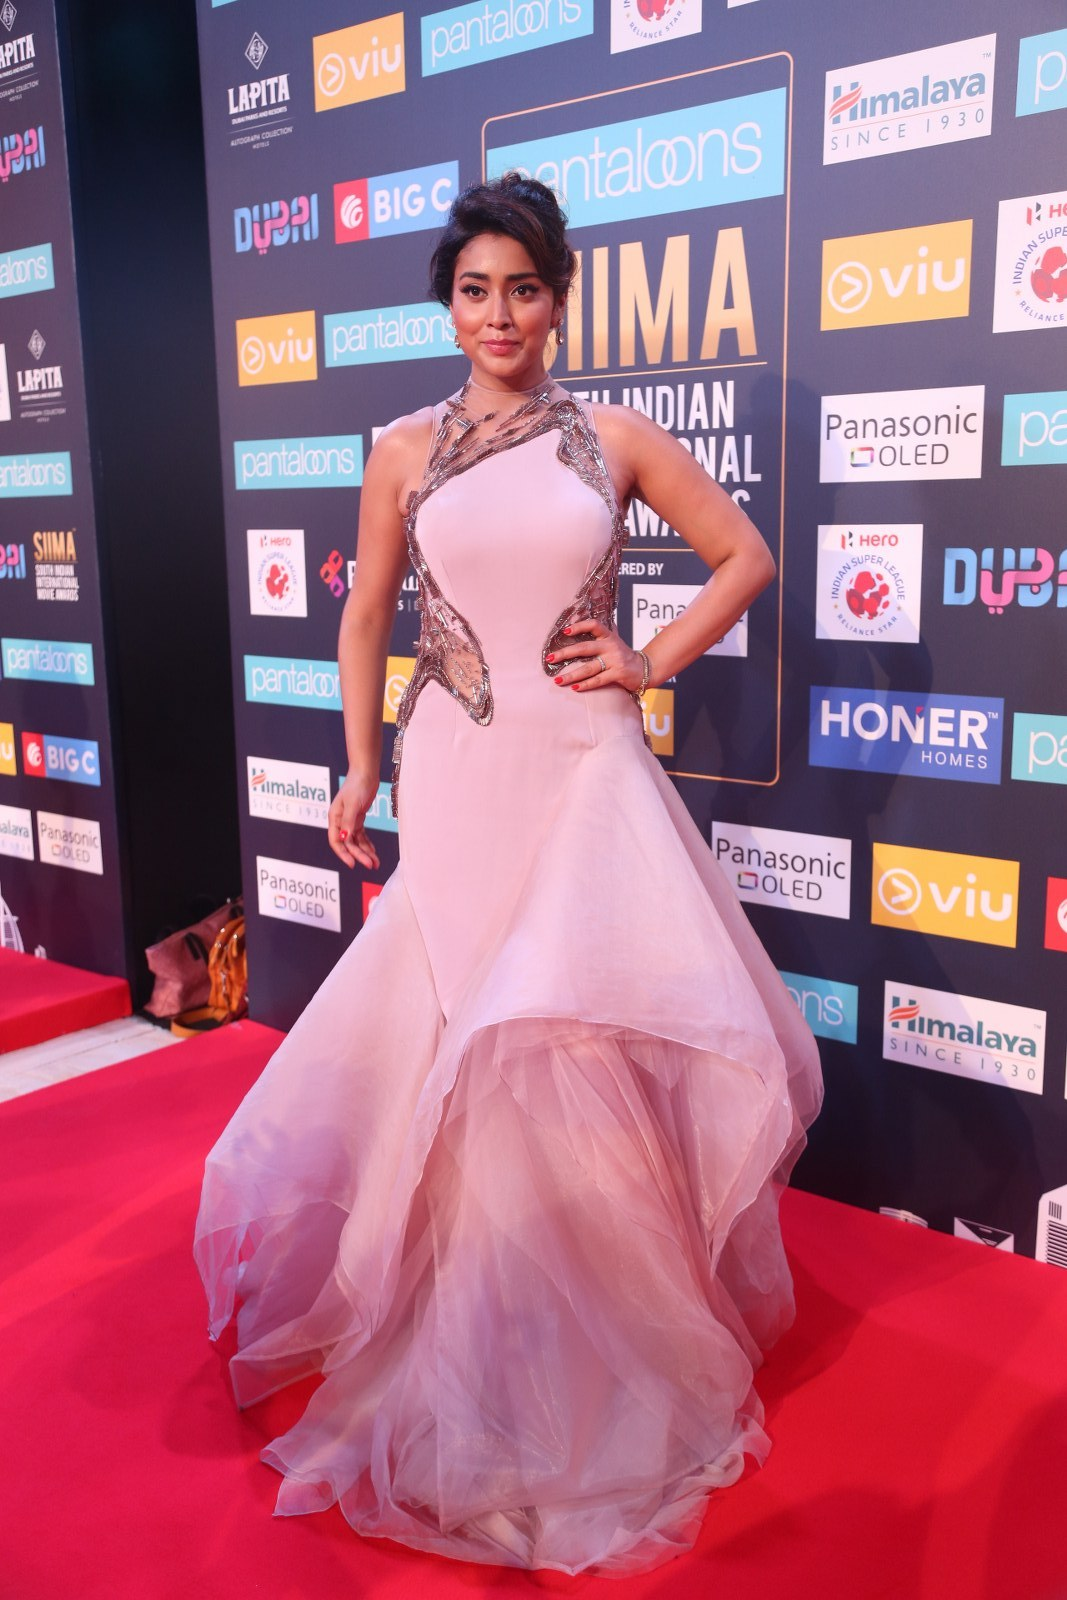 Shriya Saran Pictures from SIIMA Event - Sexy Actress Pictures | Hot Actress Pictures - ActressSnaps.com